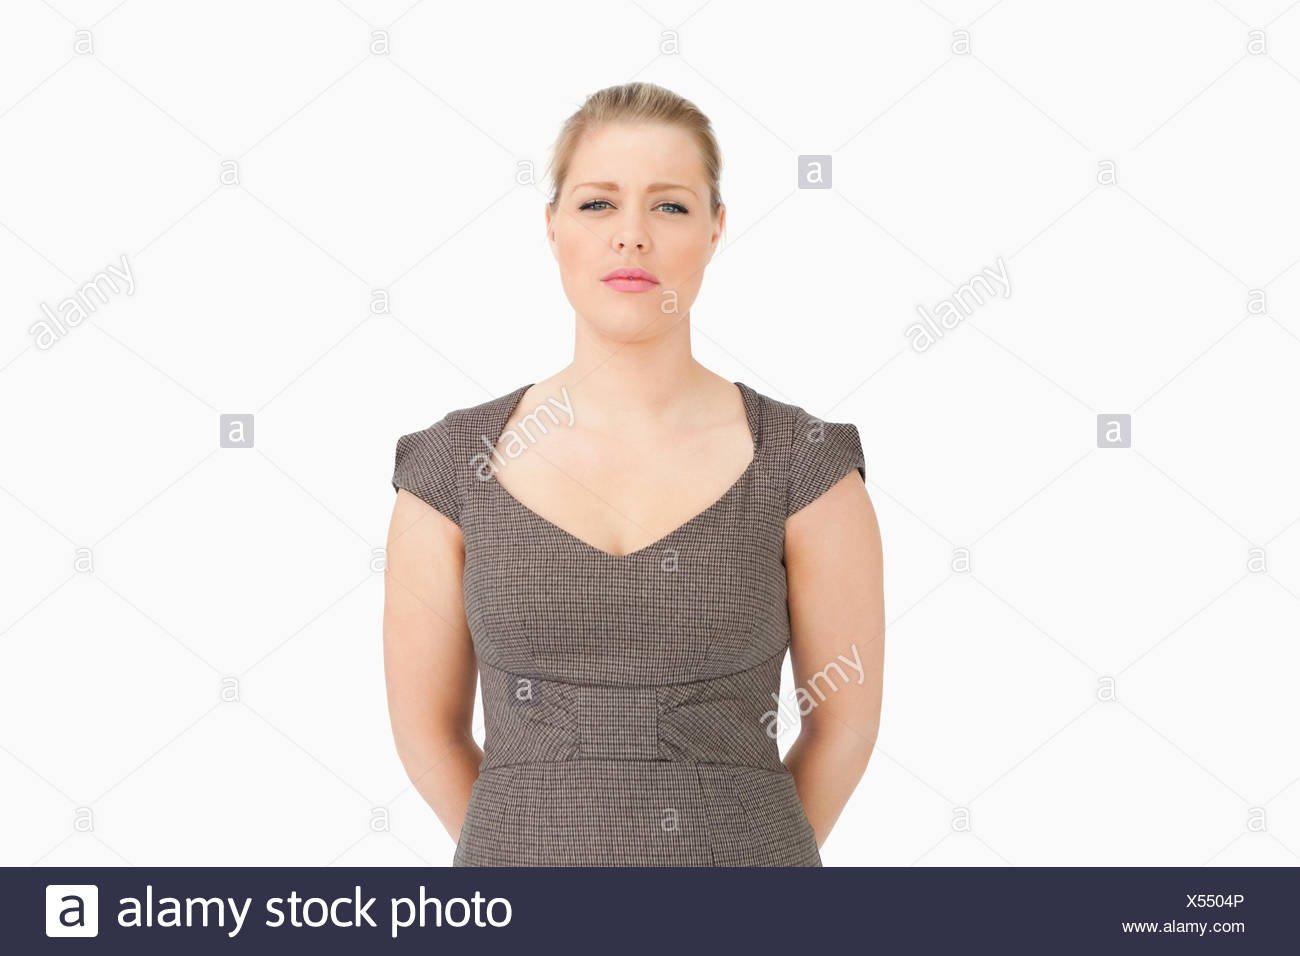 Woman standing with her arms behind her back - Stock Image